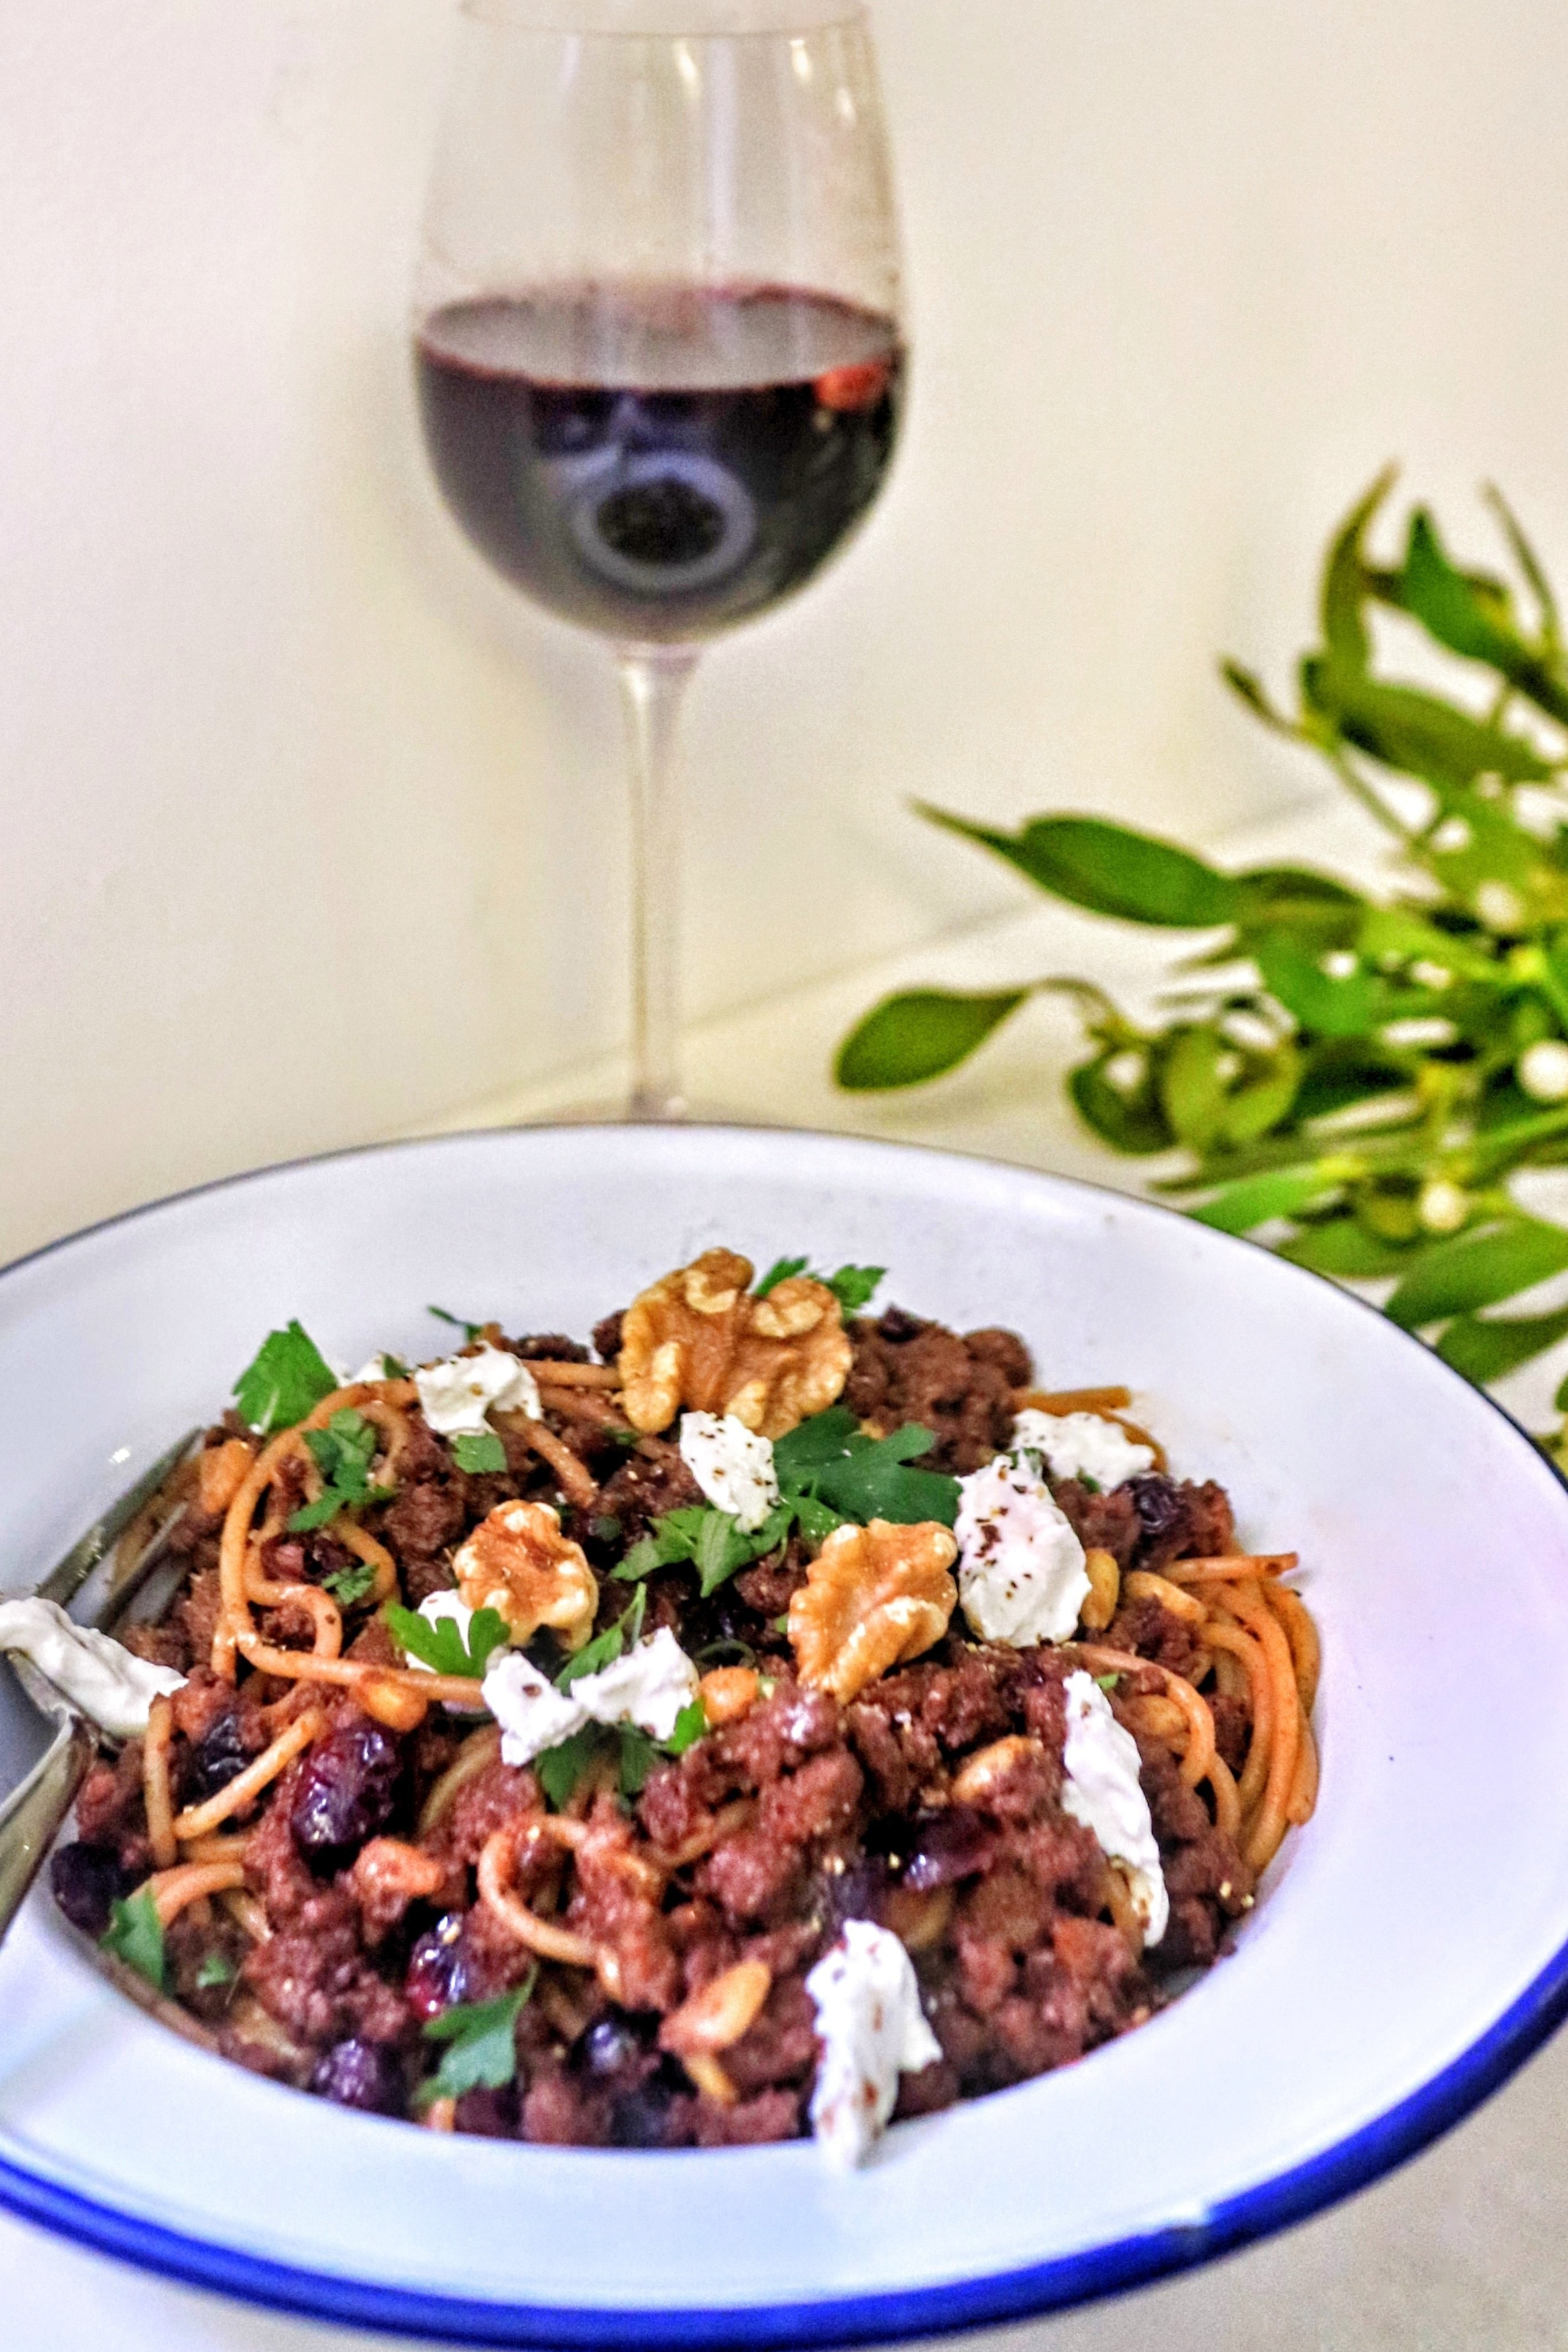 Mulled wine spaghetti bolognese how to cook a spaghetti dish mulled wine infused vegetarian spaghetti bolognese with pine nuts walnuts cranberries and goats cheese forumfinder Choice Image